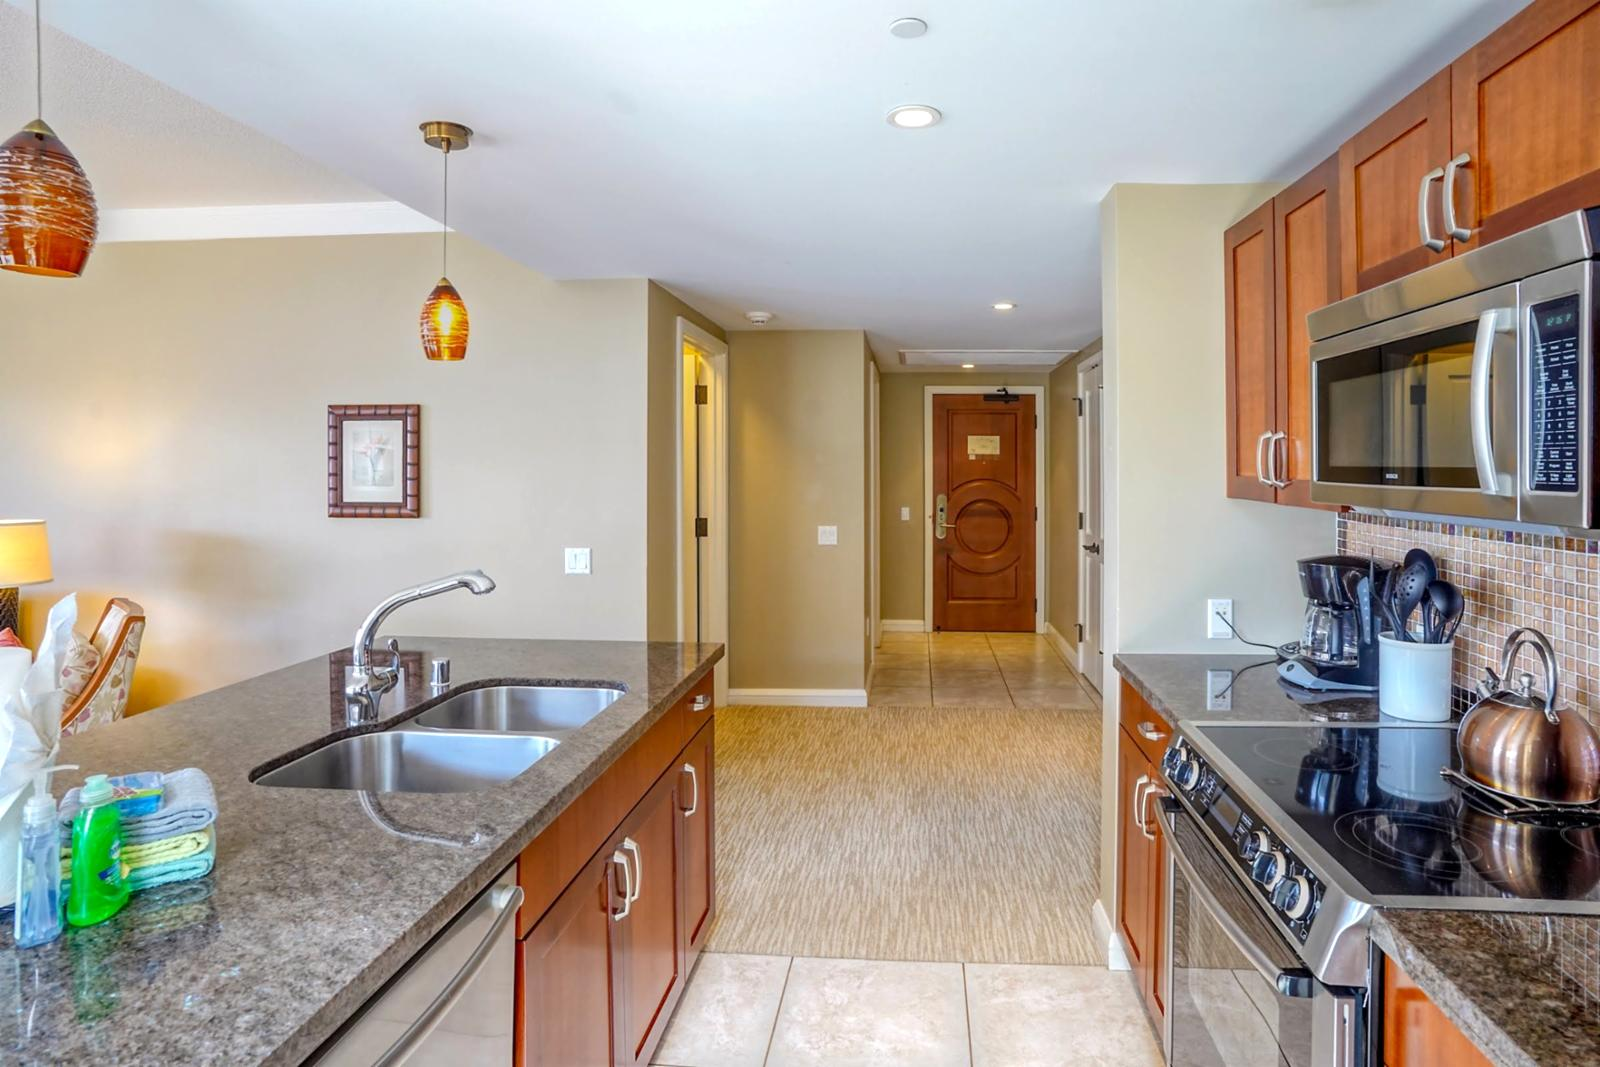 Custom countertops and accent lighting